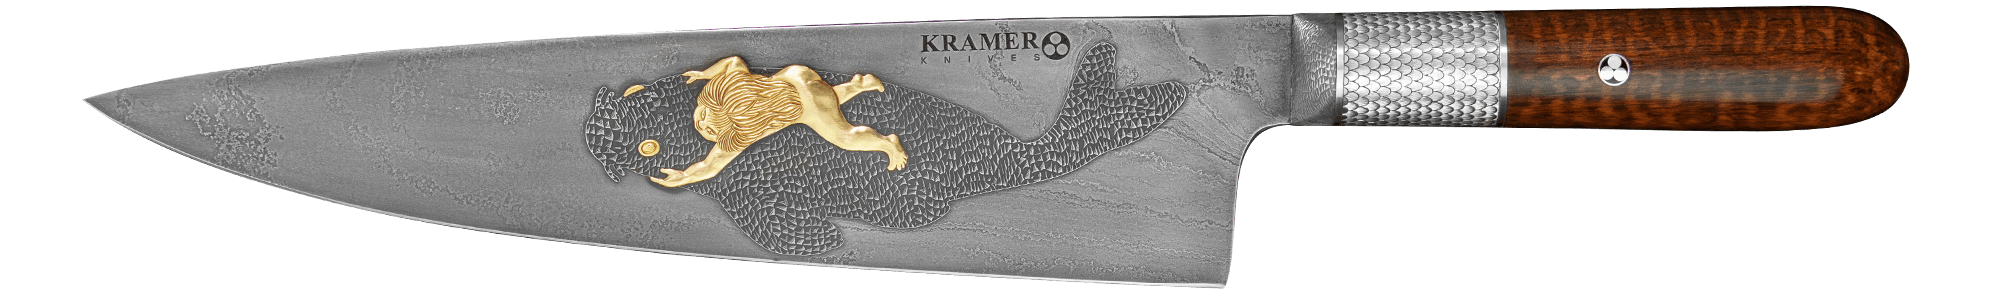 Kintaro's Ride | Kramer Knives